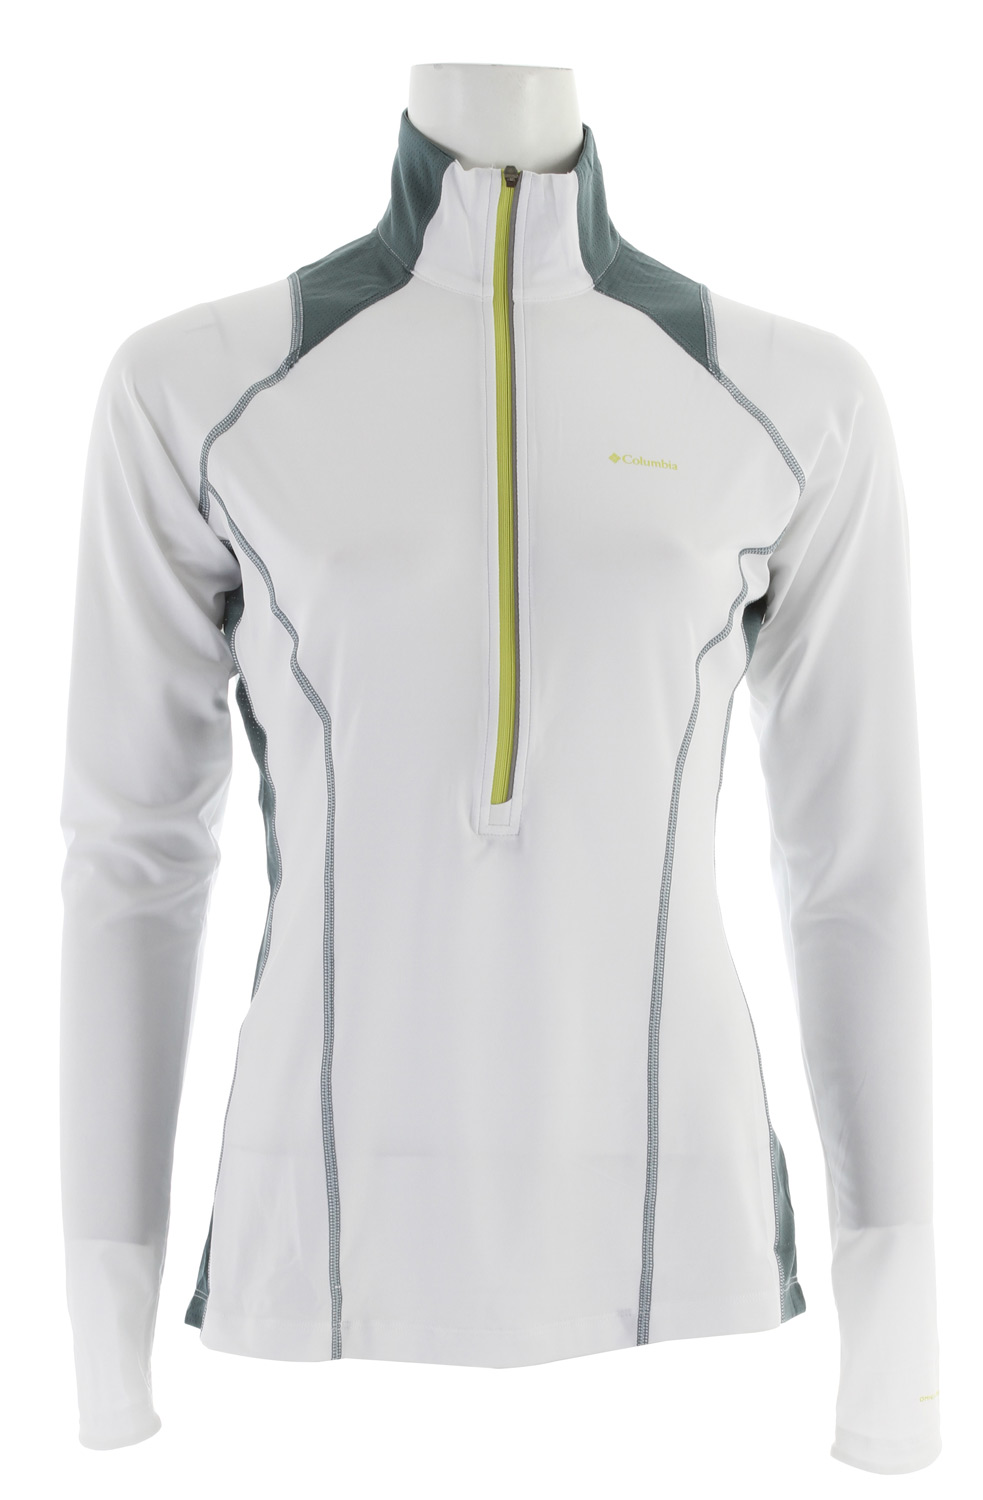 Key Features of the Columbia Solar Polar 1/2 Zip Fleece: 91% polyester/9% elastane Freezer Ice jersey, 100% polyester pointelle mesh, 86% polyester/14% elastane Flex Stretch woven Omni-Freeze ICE™ advanced cooling Omni-Shade™ UPF 50 sun protection Omni-Wick™ Vented Thumb holes Reflective detail Antimicrobial Laser cut details - $69.95